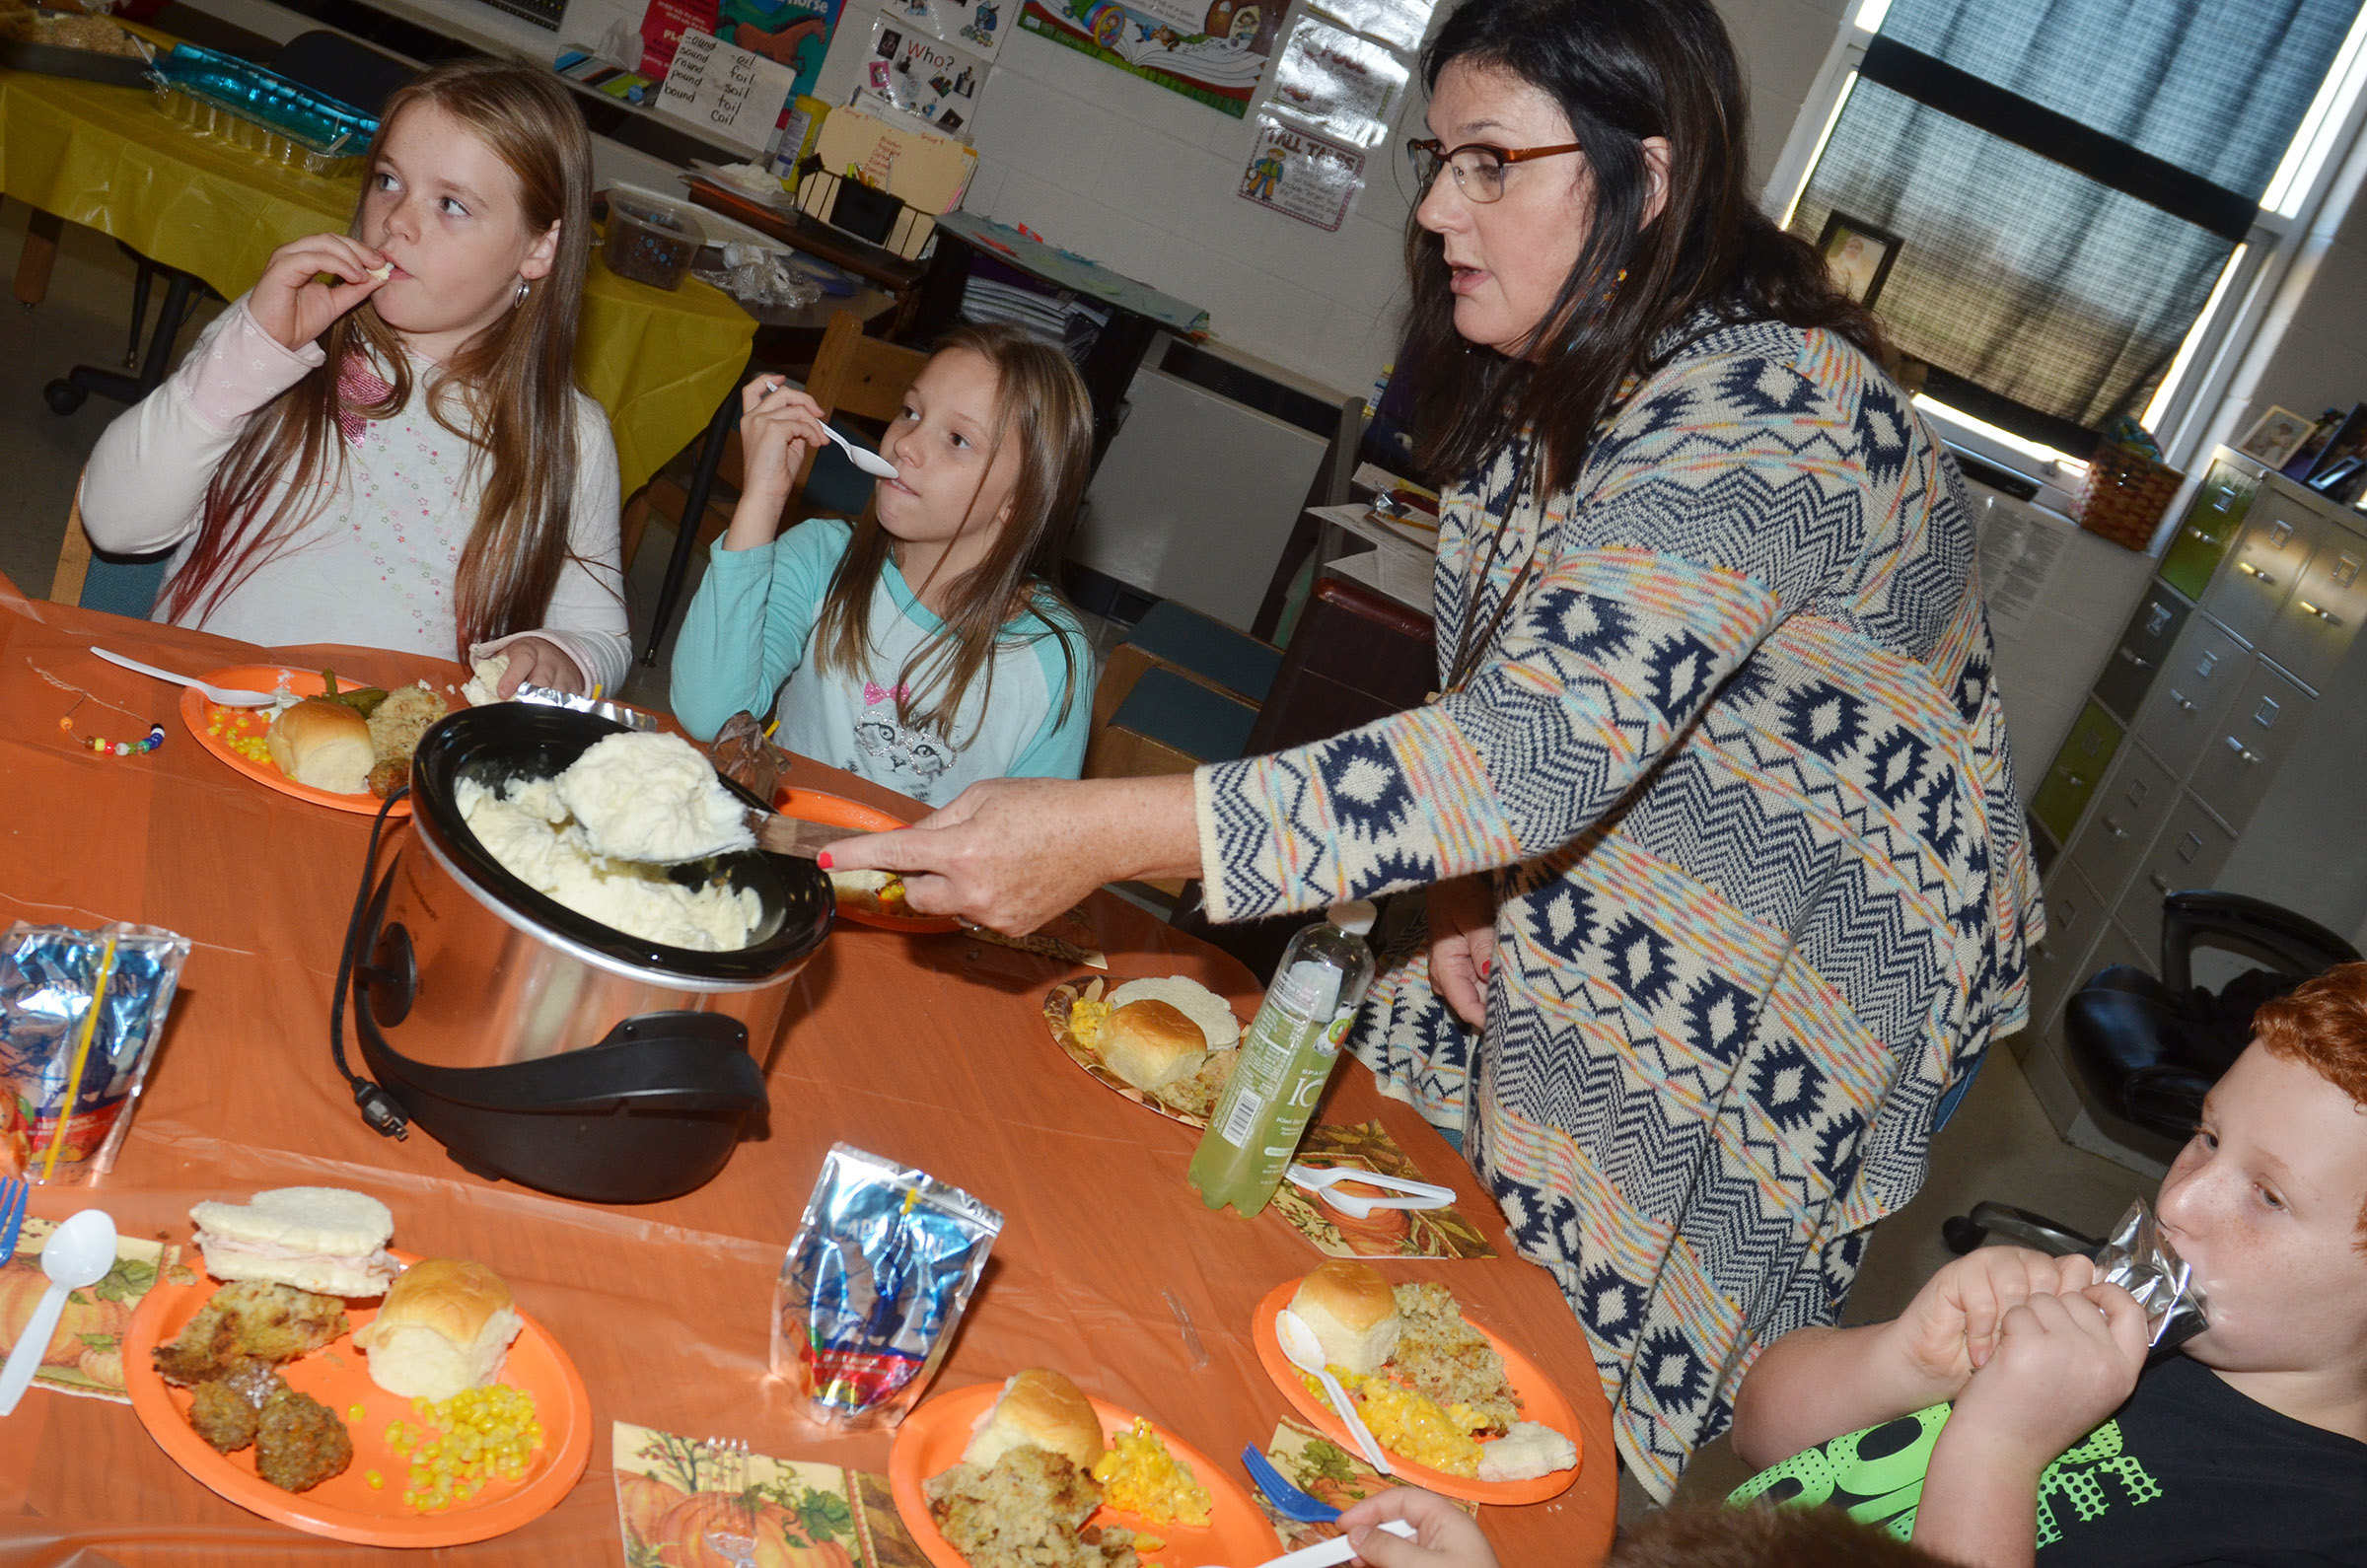 CES third-grade teacher Patty Haley serves her students.